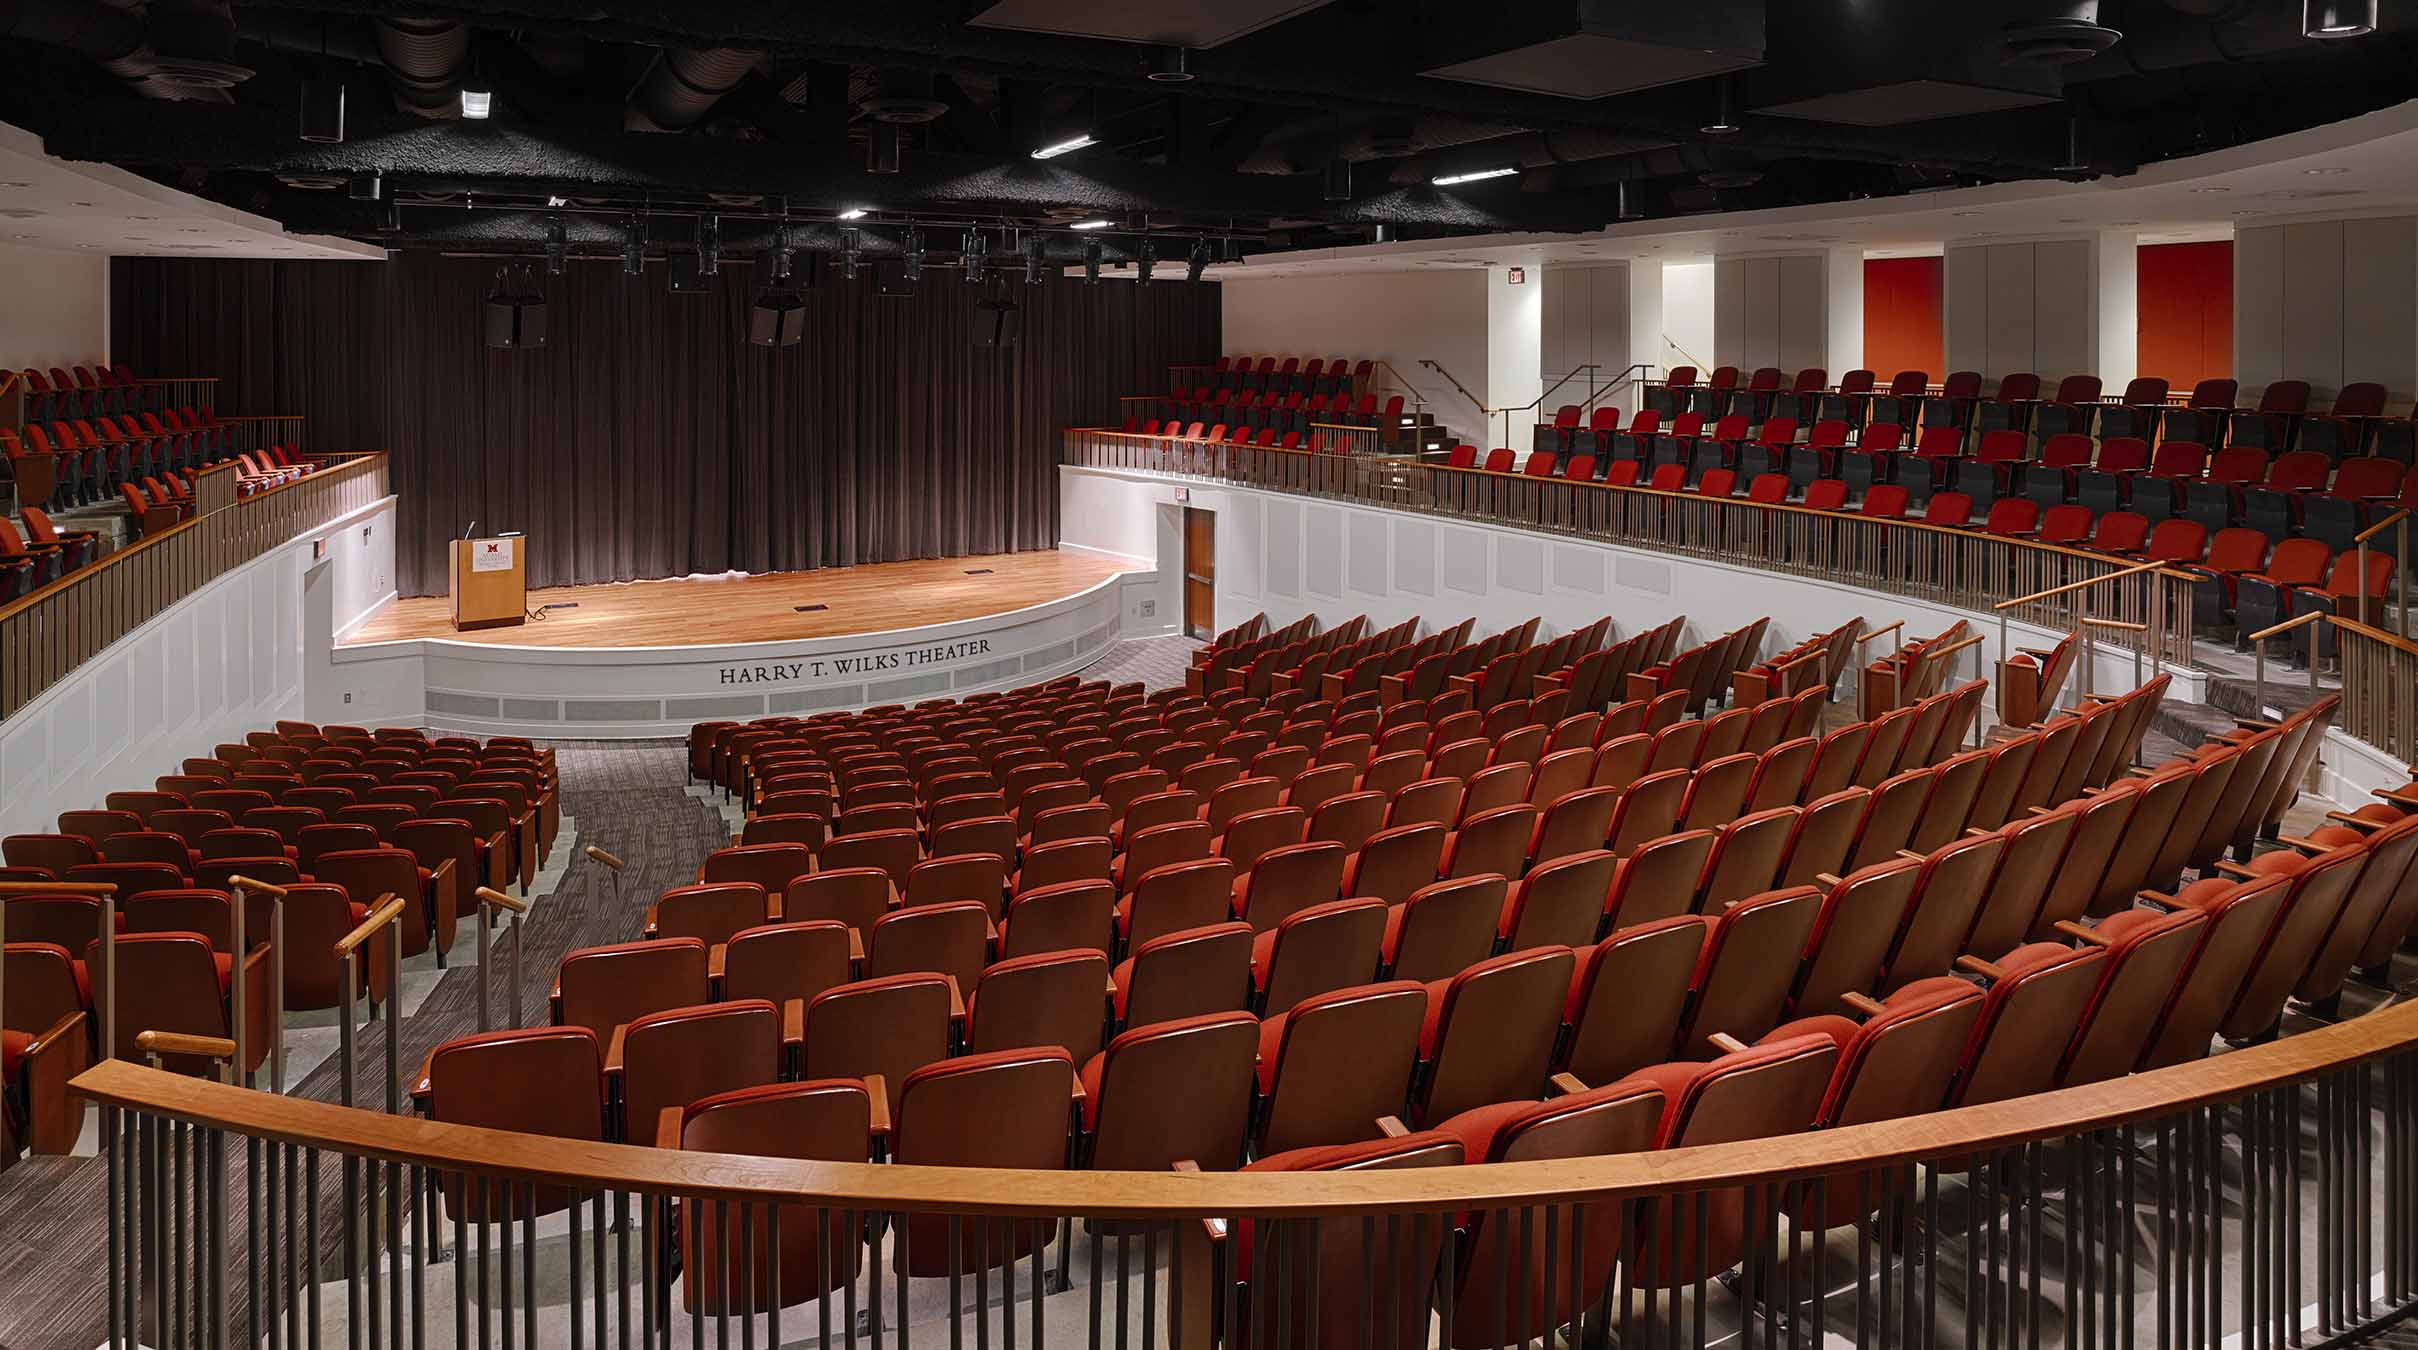 500-seat theater with red seats and a natural wood stage